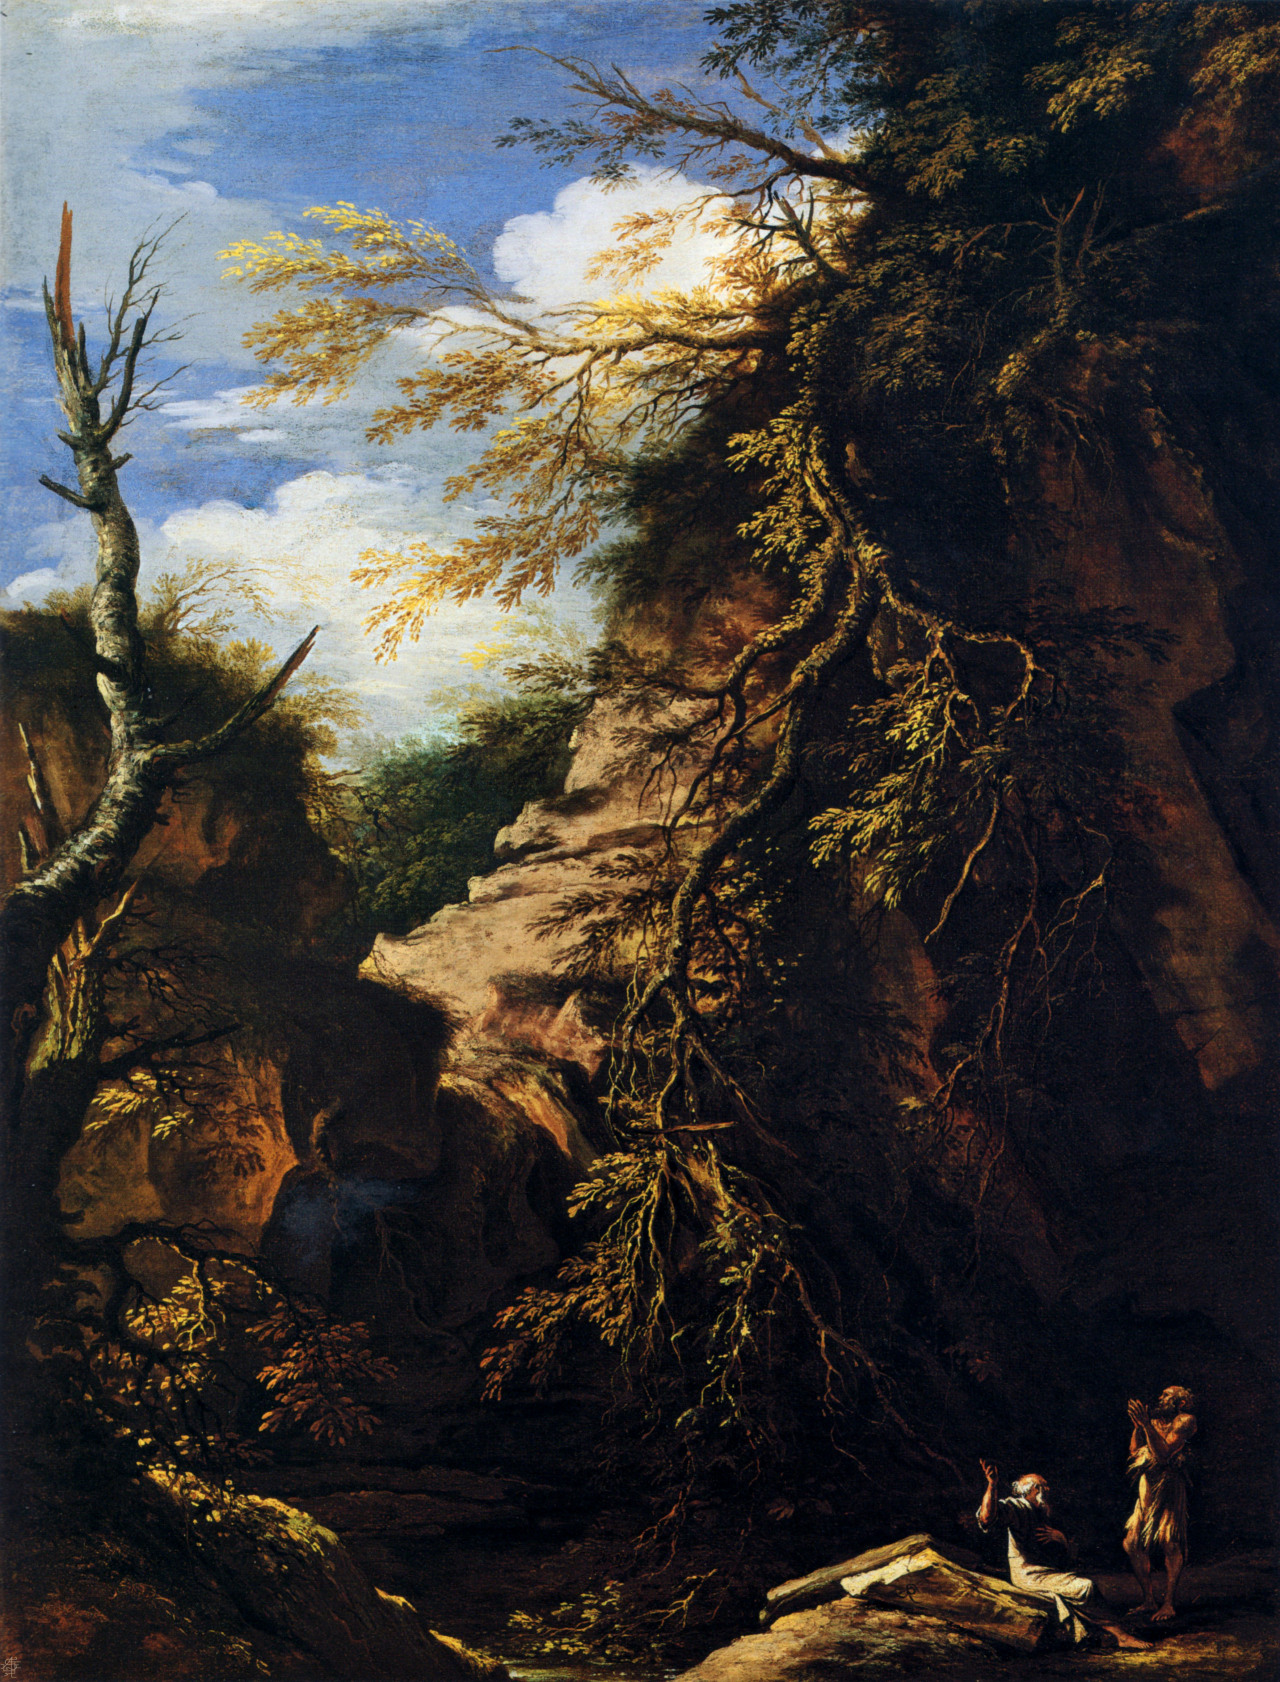 Landscape with Hermits by Salvator Rosa ca. 1655